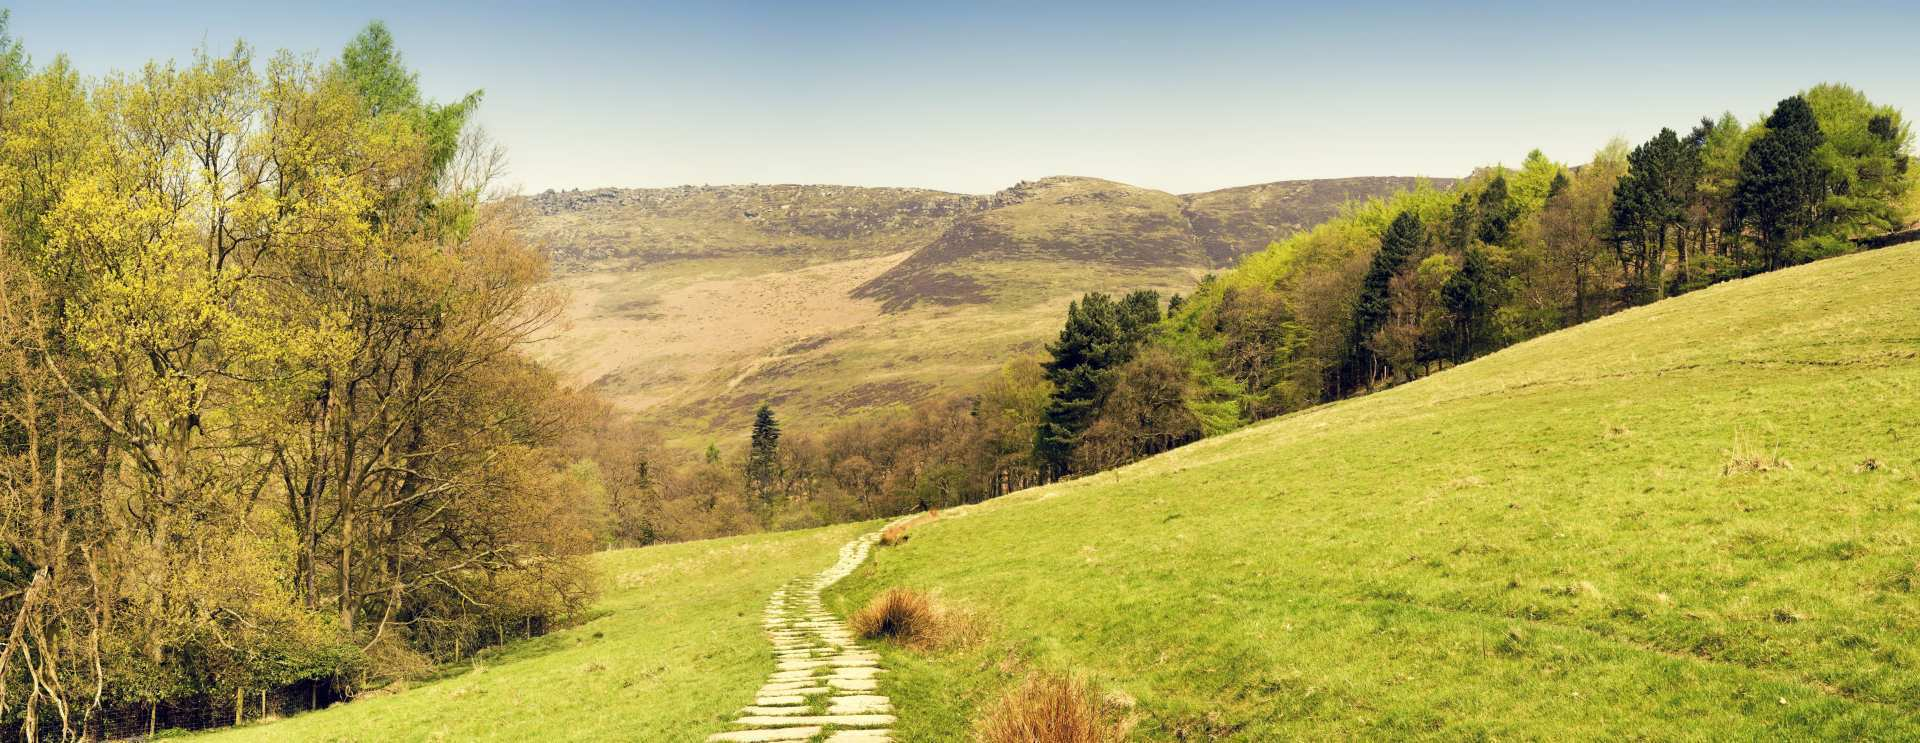 Pennine Way Trail Running - South Section